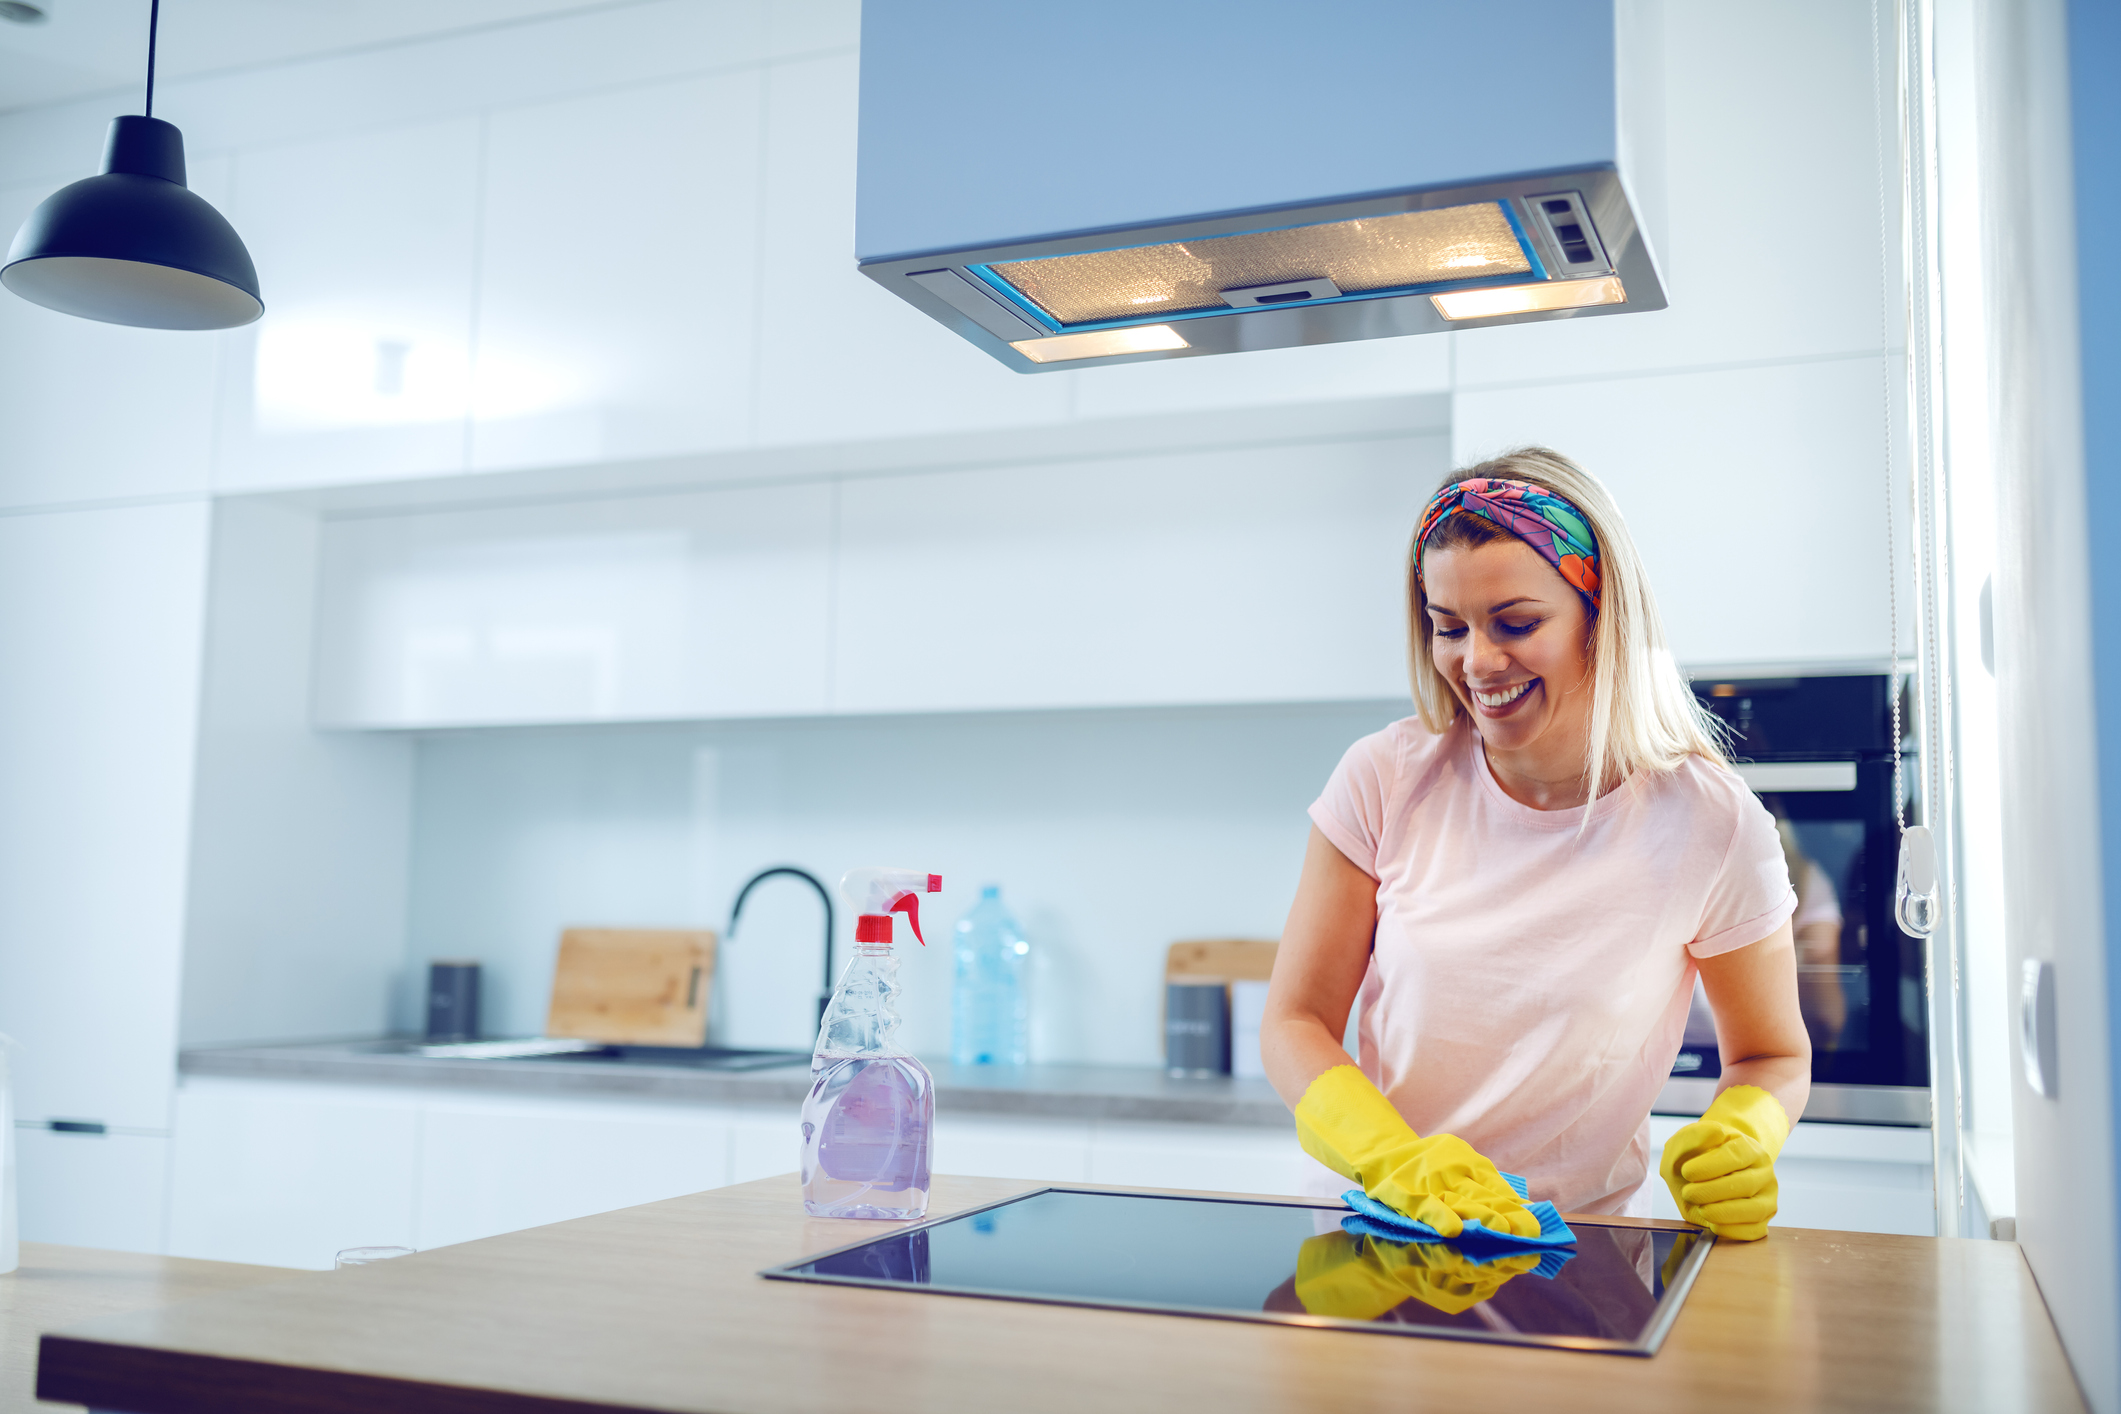 Worthy cheerful caucasian blond housewife with rubber gloves on hands cleaning stove. Kitchen interior.